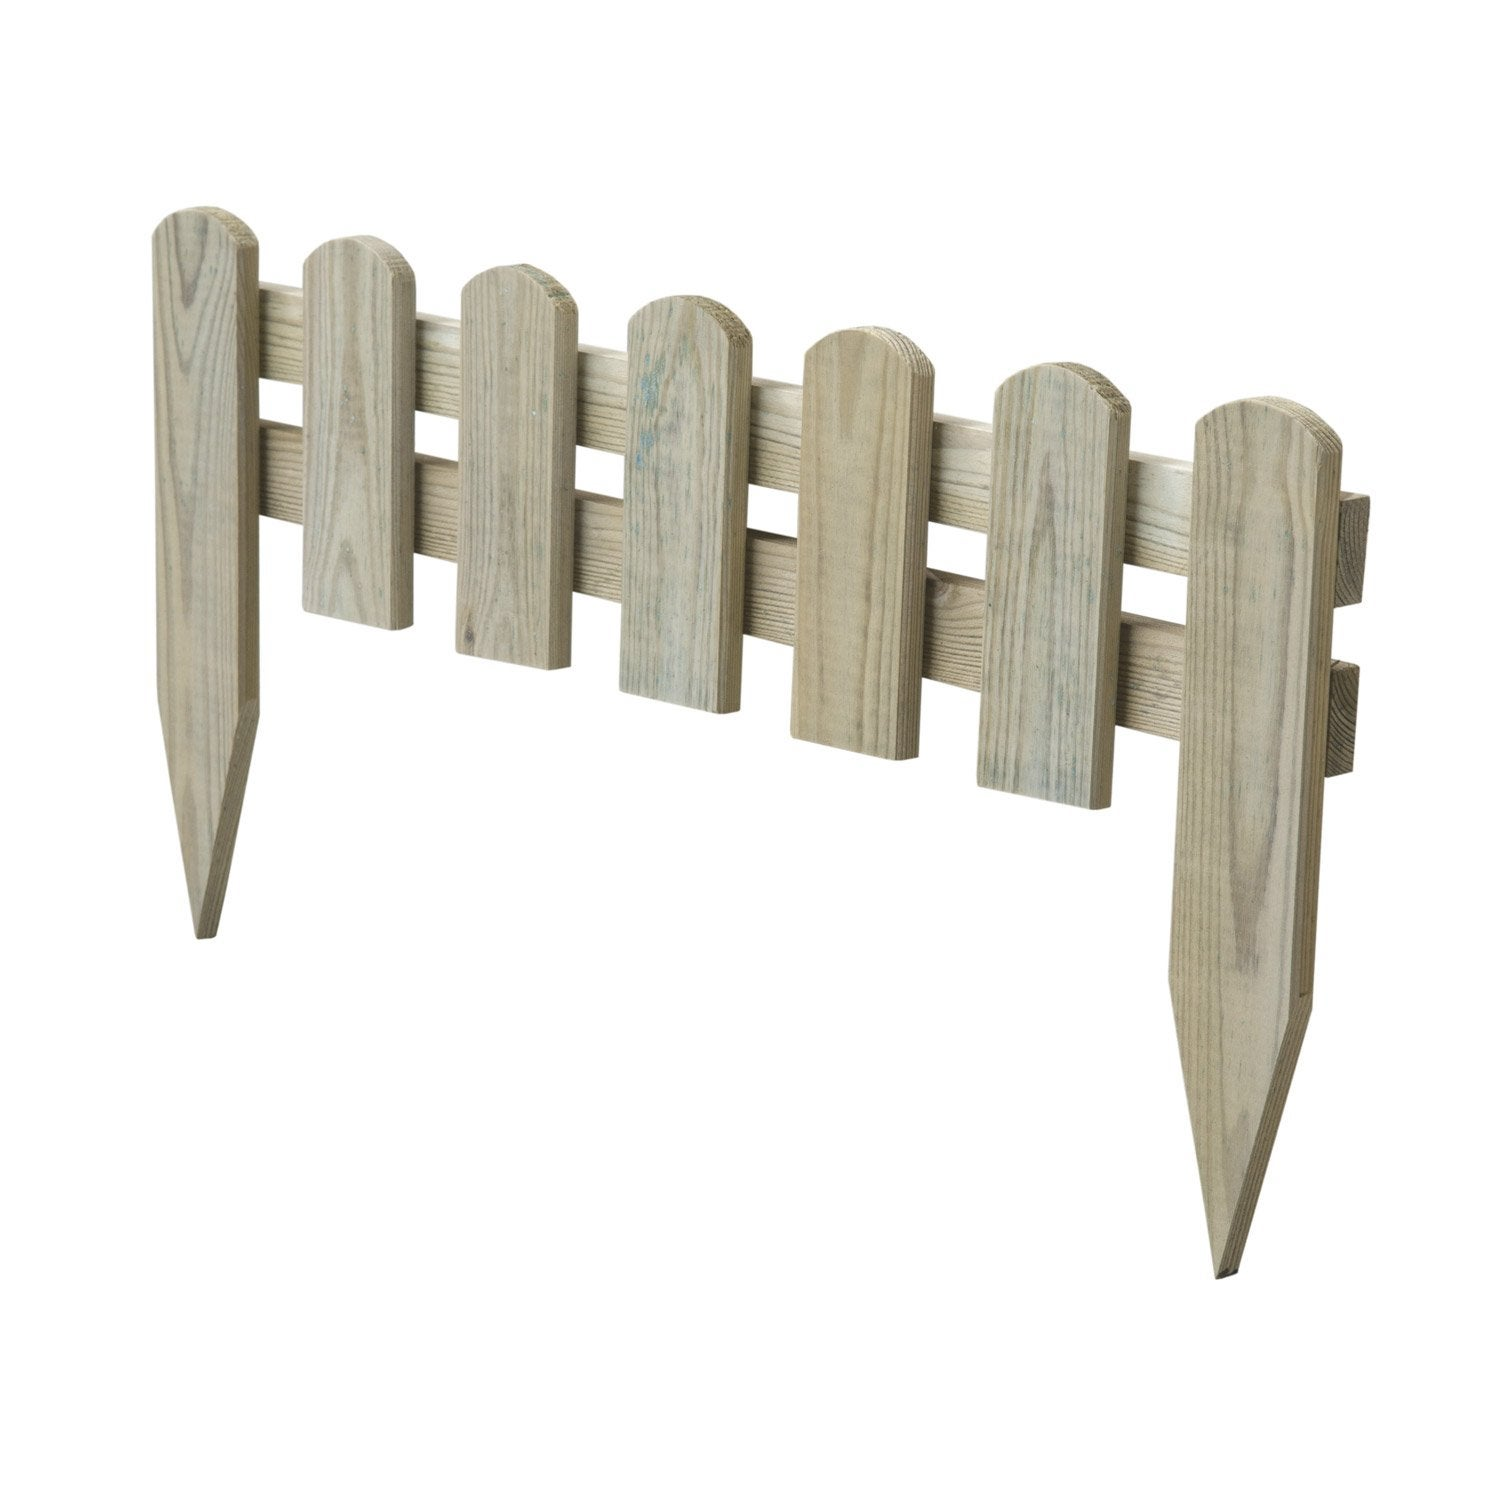 Bordure planter stackette bois naturel x cm for Bordures de jardin en bois